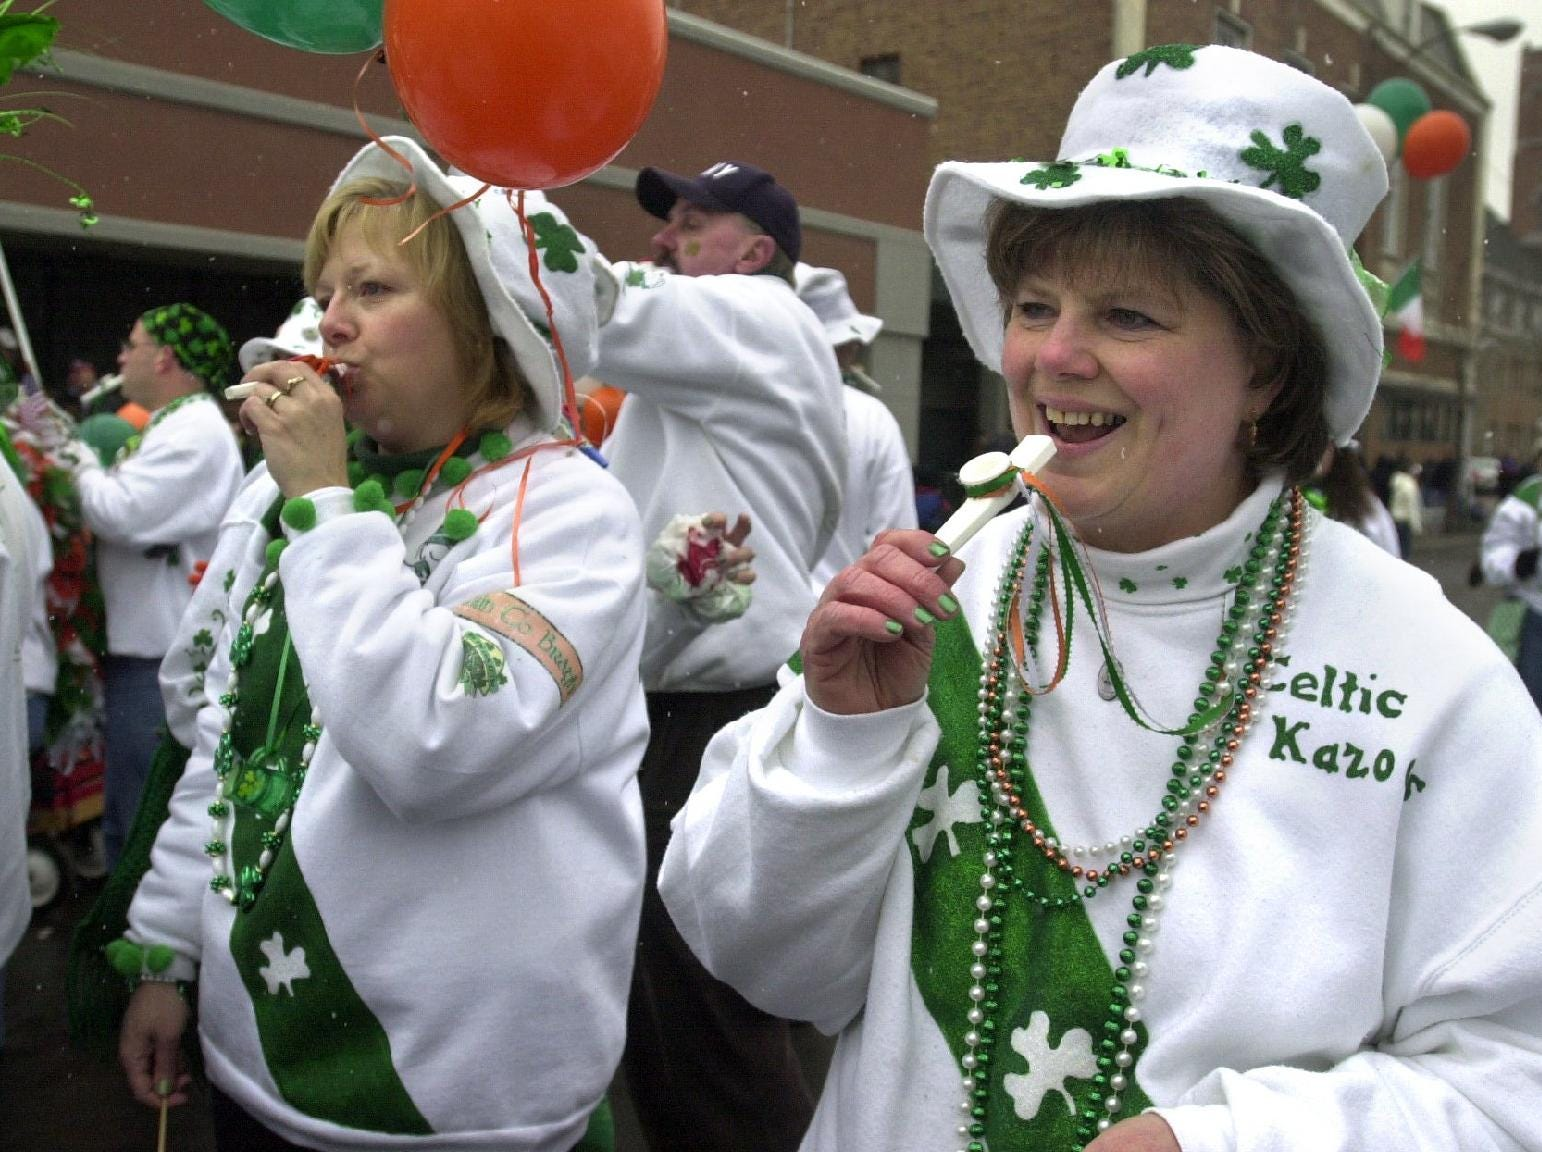 2003: During the St. Patrick's Day Parade in Binghamton on Saturday, Kathy Rodzinka of the Town of Conklin (left) and Linda Sisson of Chenango Bridge play with the Celtic Kazoo.